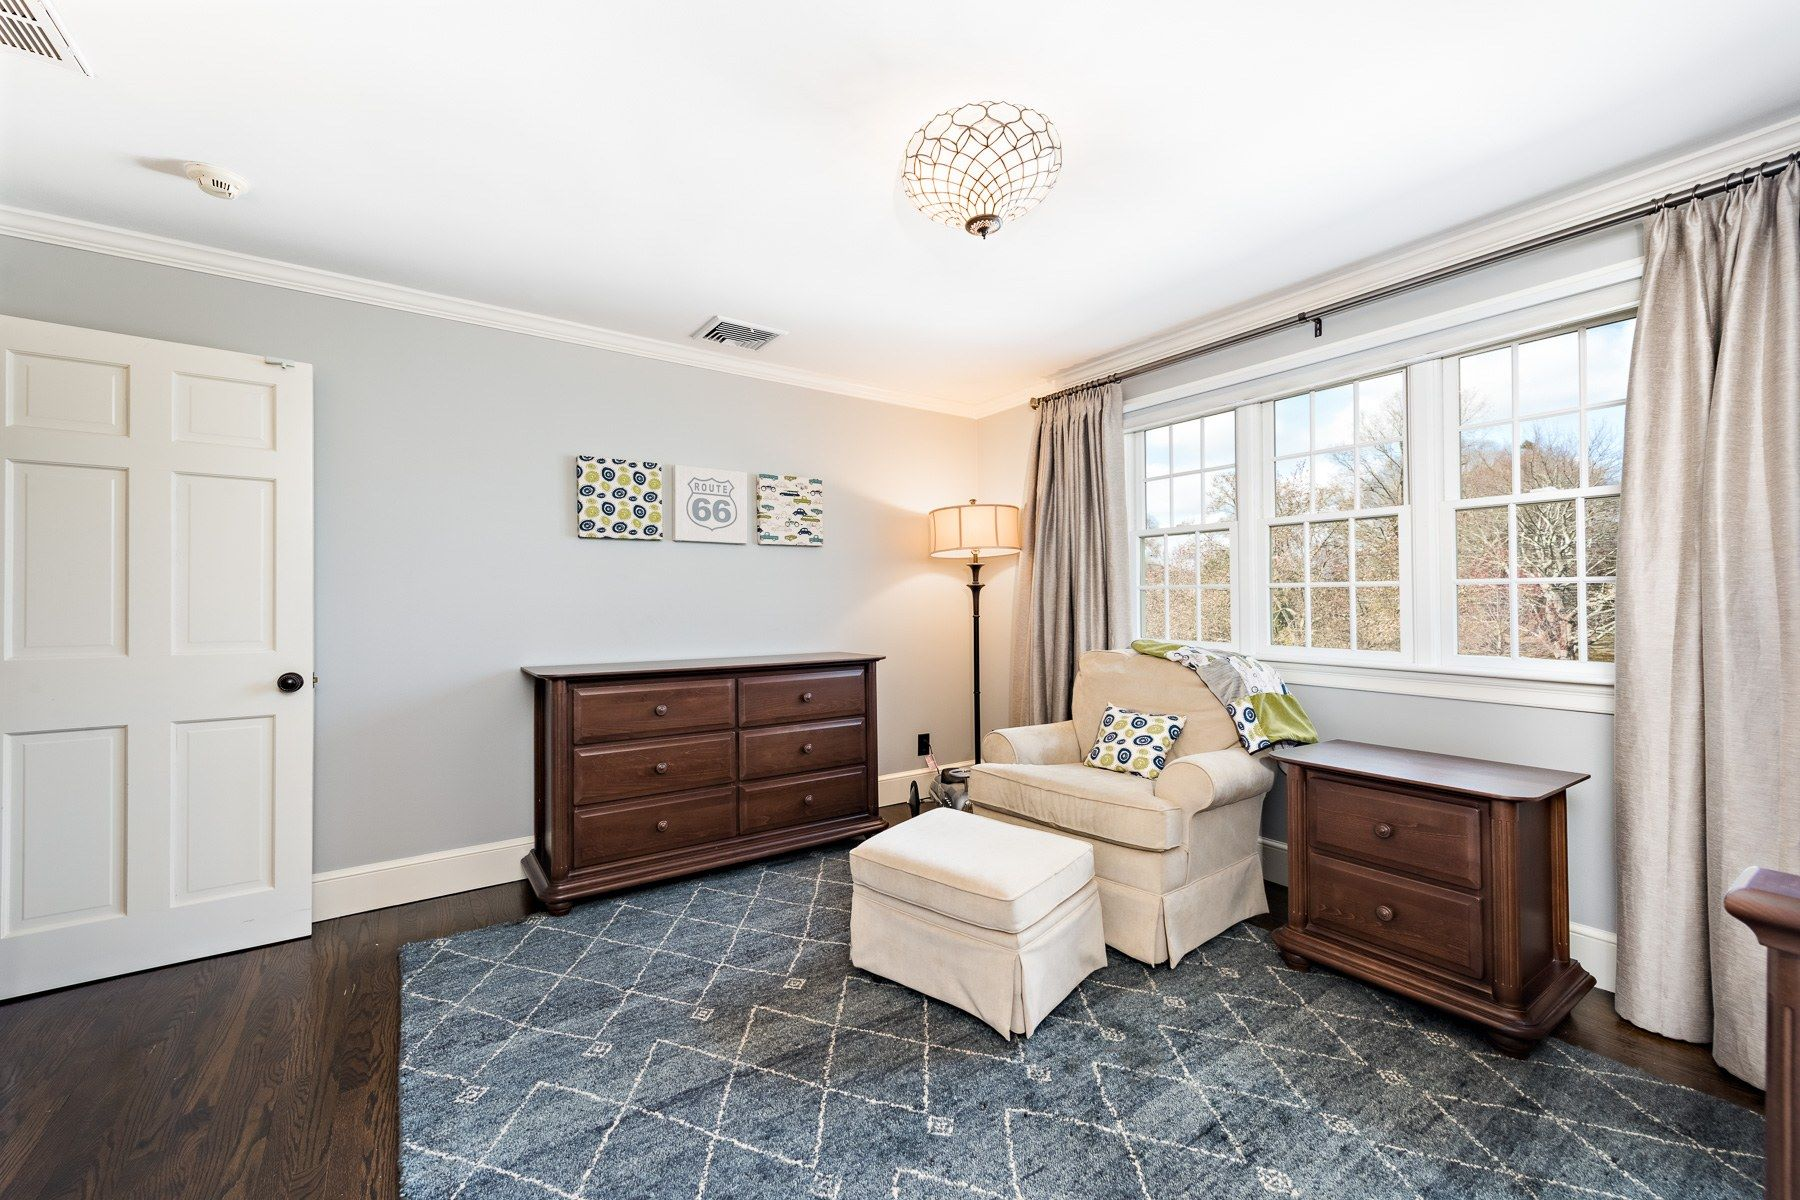 Additional photo for property listing at 206 Rumstick Road, Barrington, RI 206 Rumstick Road Barrington, Rhode Island 02806 United States